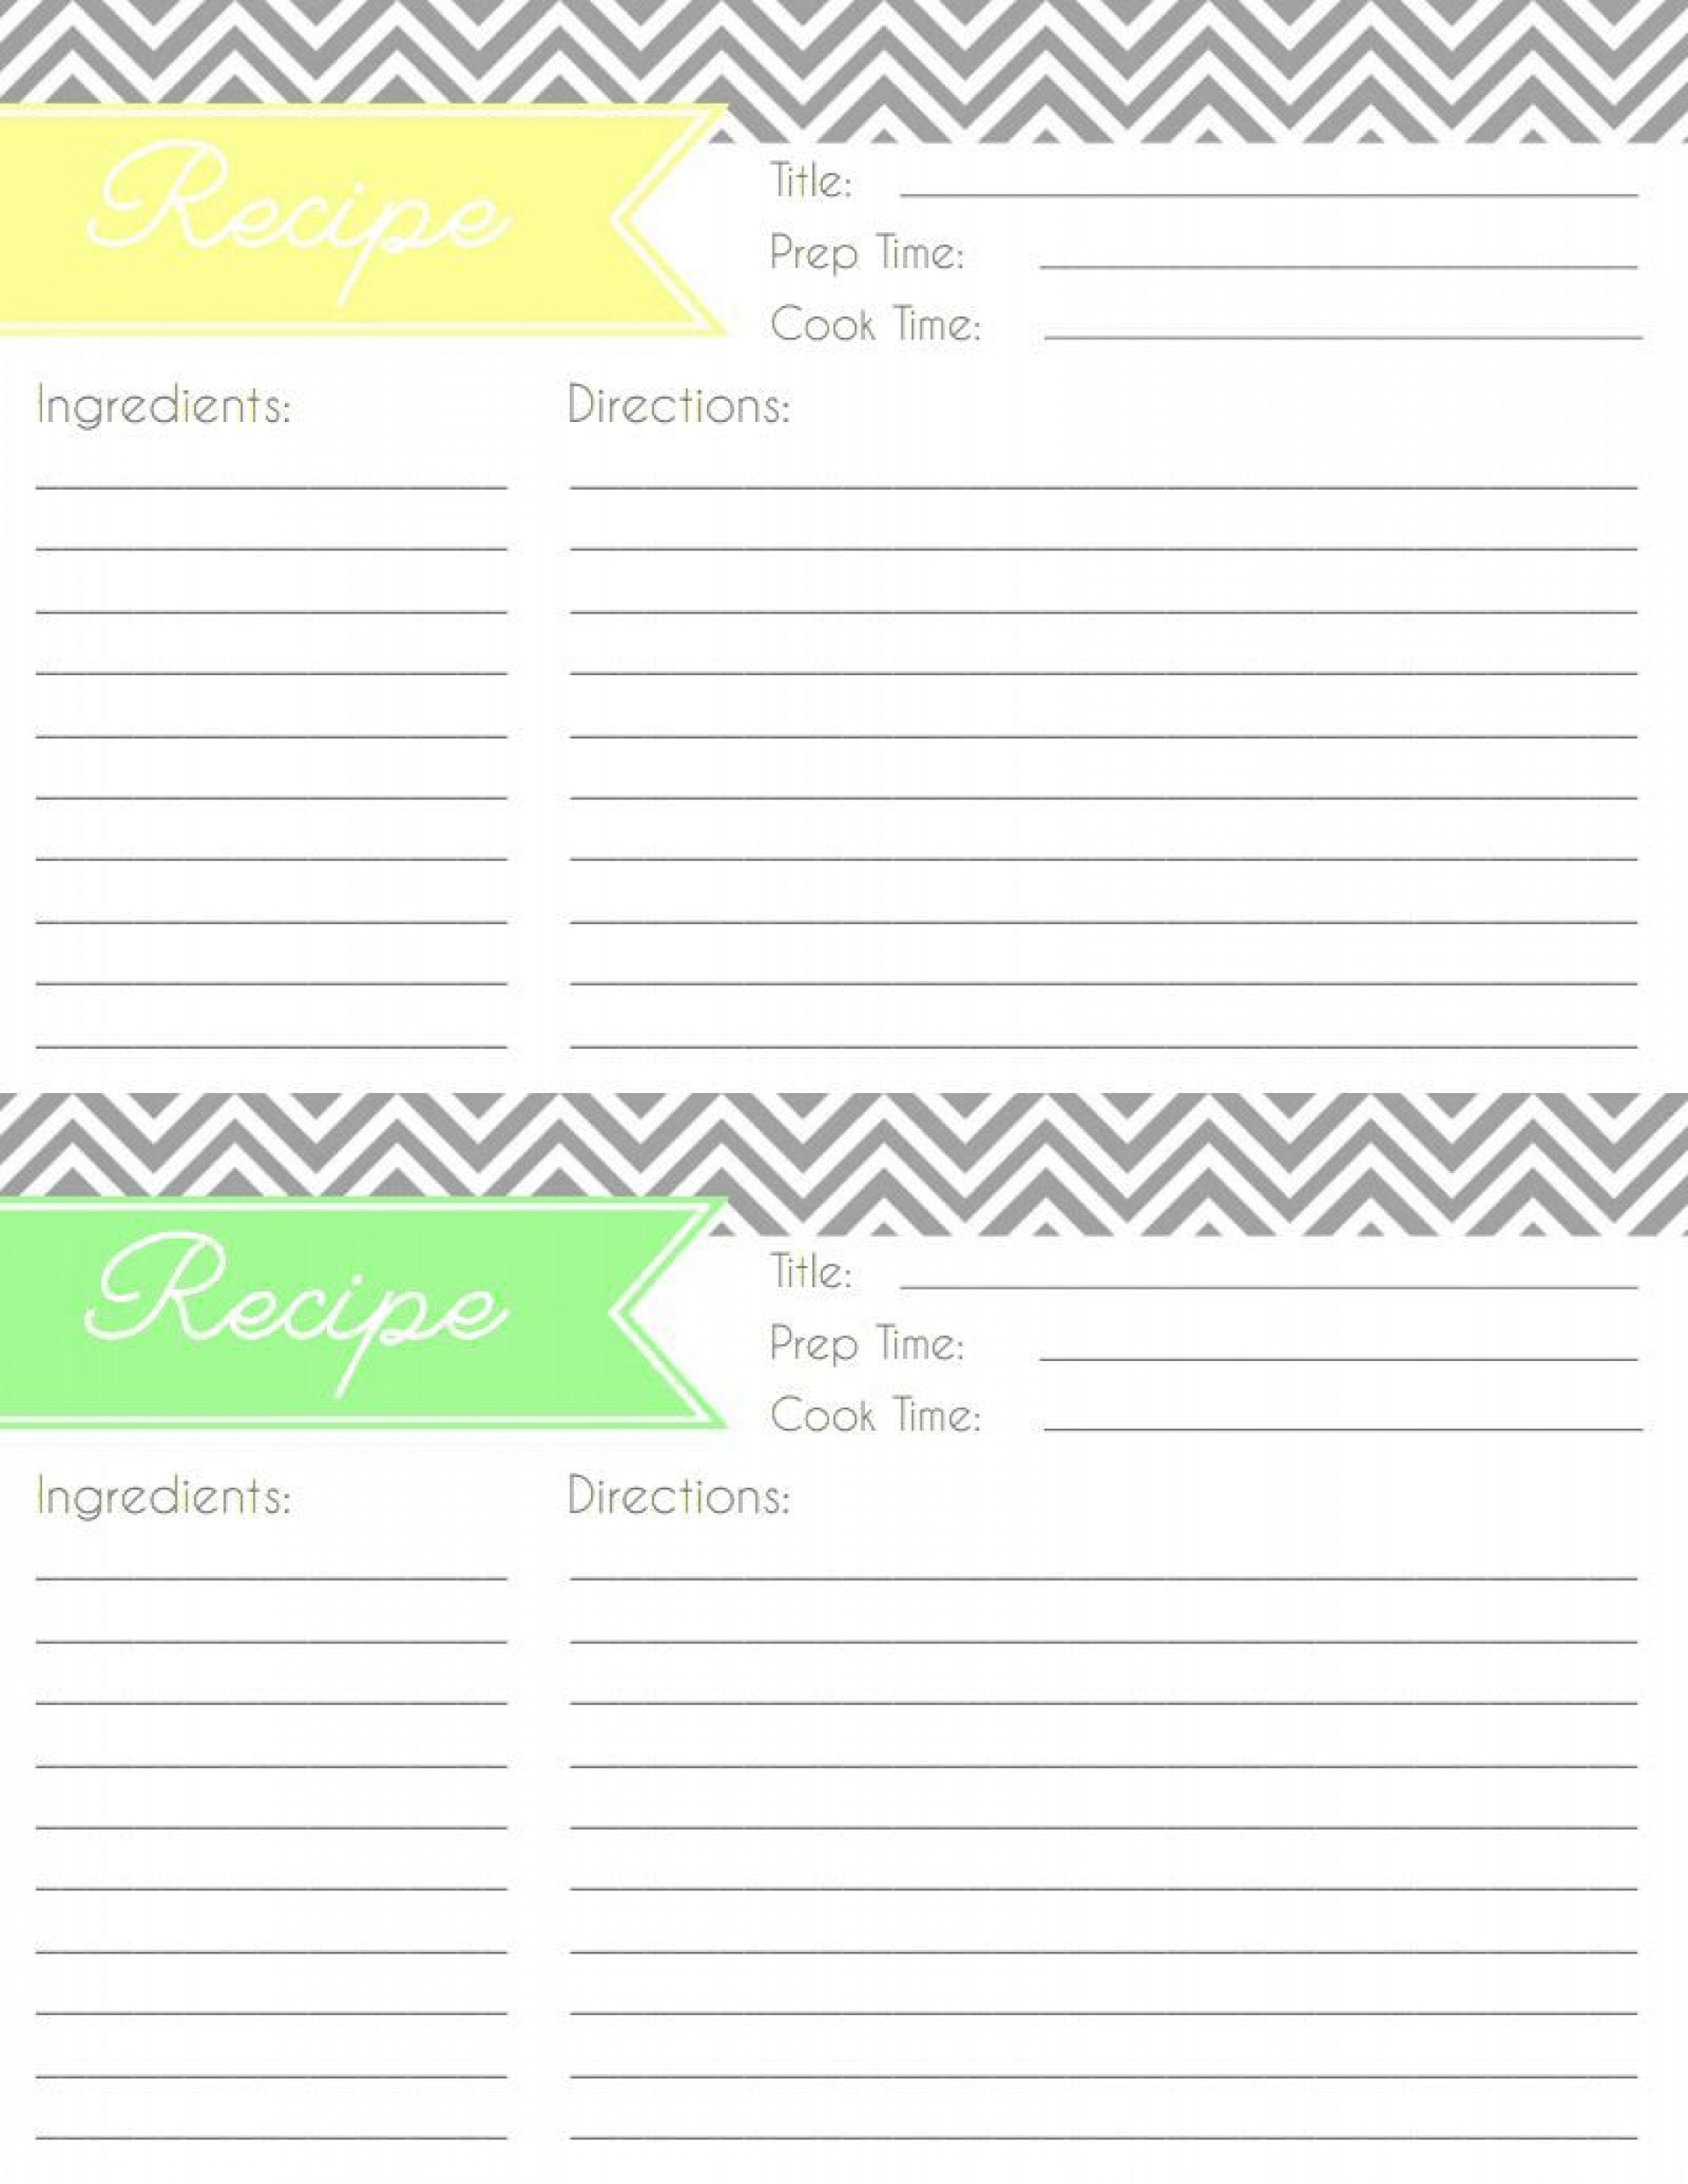 005 Formidable Fillable Recipe Card Template Idea  For Word Free1920